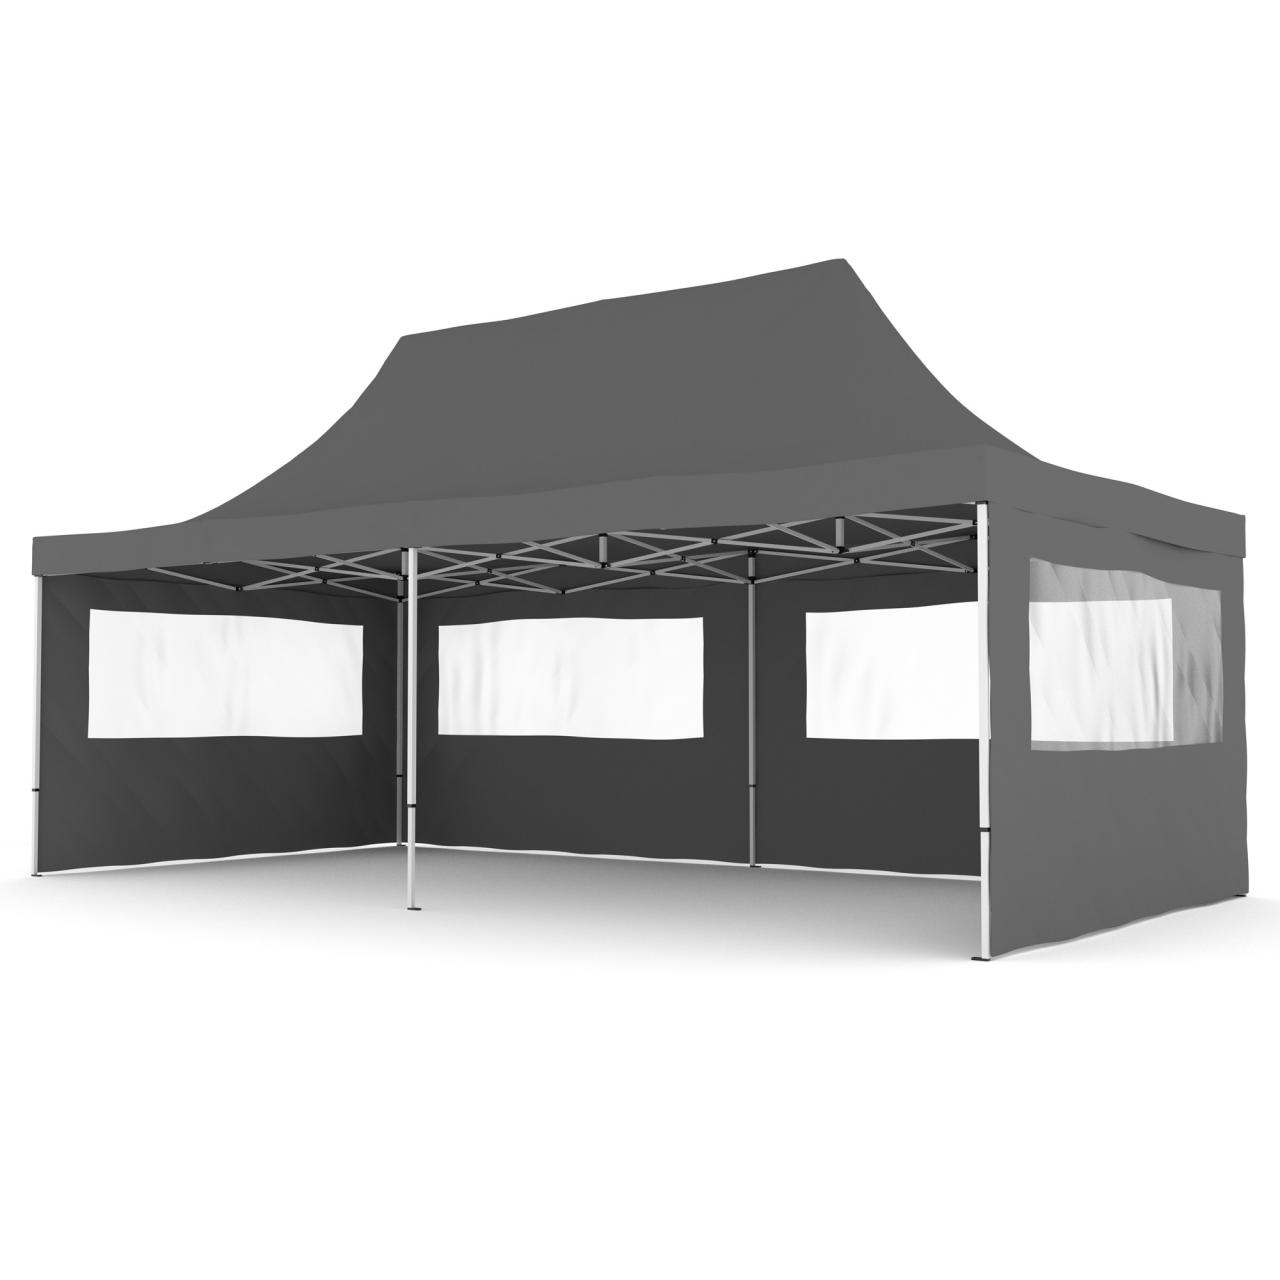 alu 3x6m falt pavillon partyzelt pavillion klapp zelt faltpavillon gartenzelt ebay. Black Bedroom Furniture Sets. Home Design Ideas